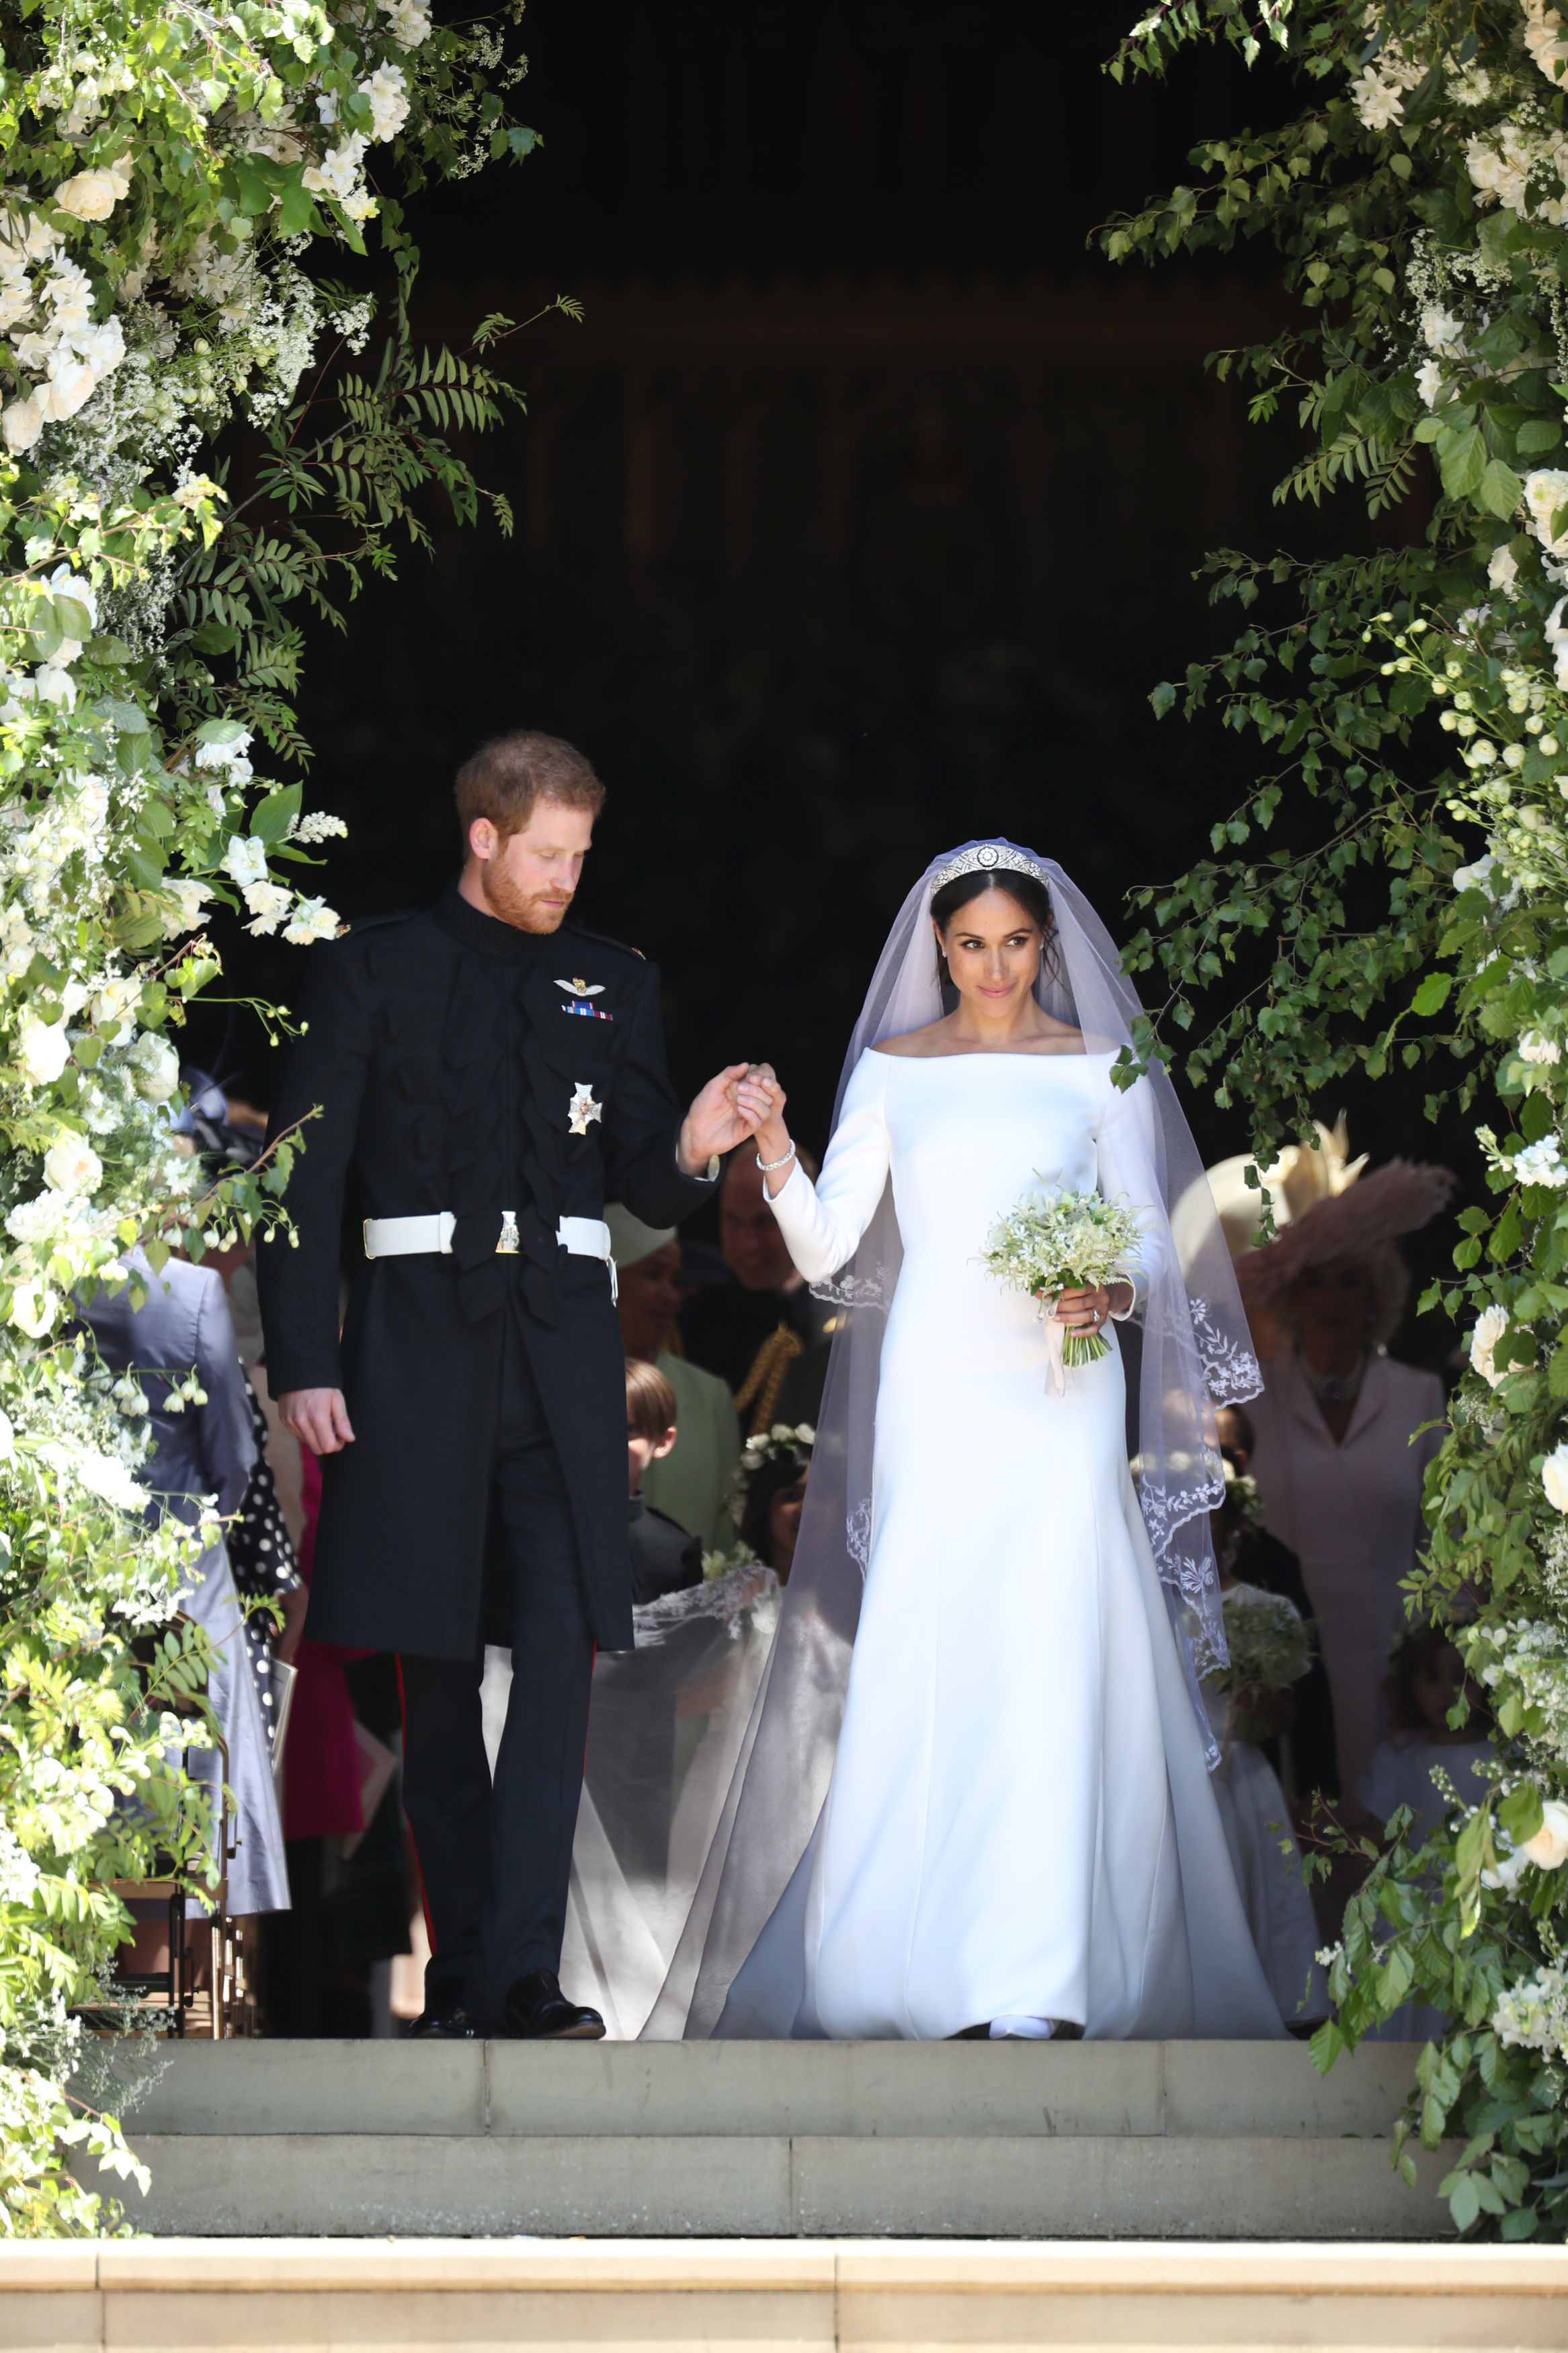 duchess-of-sussex-meghan-markle-givenchy-claire-waight-keller-royal-wedding-dress-fashion-mythology-fairytale-princess.jpg